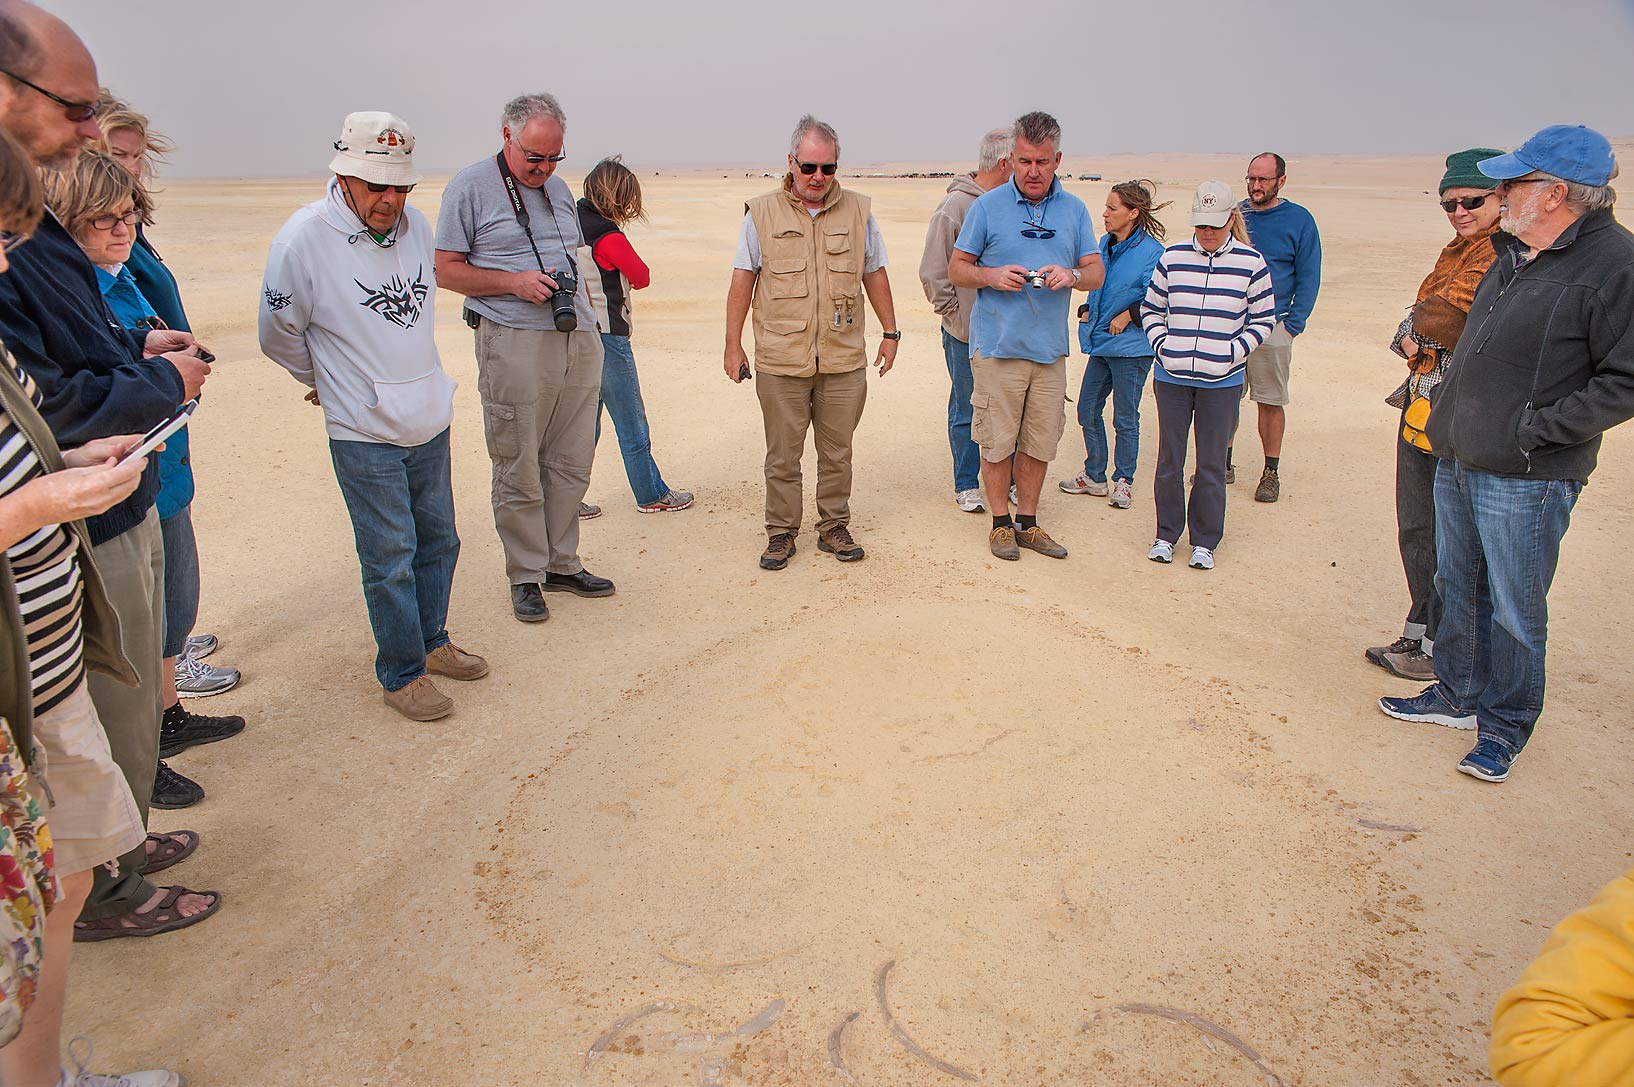 Members of the Qatar Natural History Group (QNHG...coastal sabkha in south-western Qatar